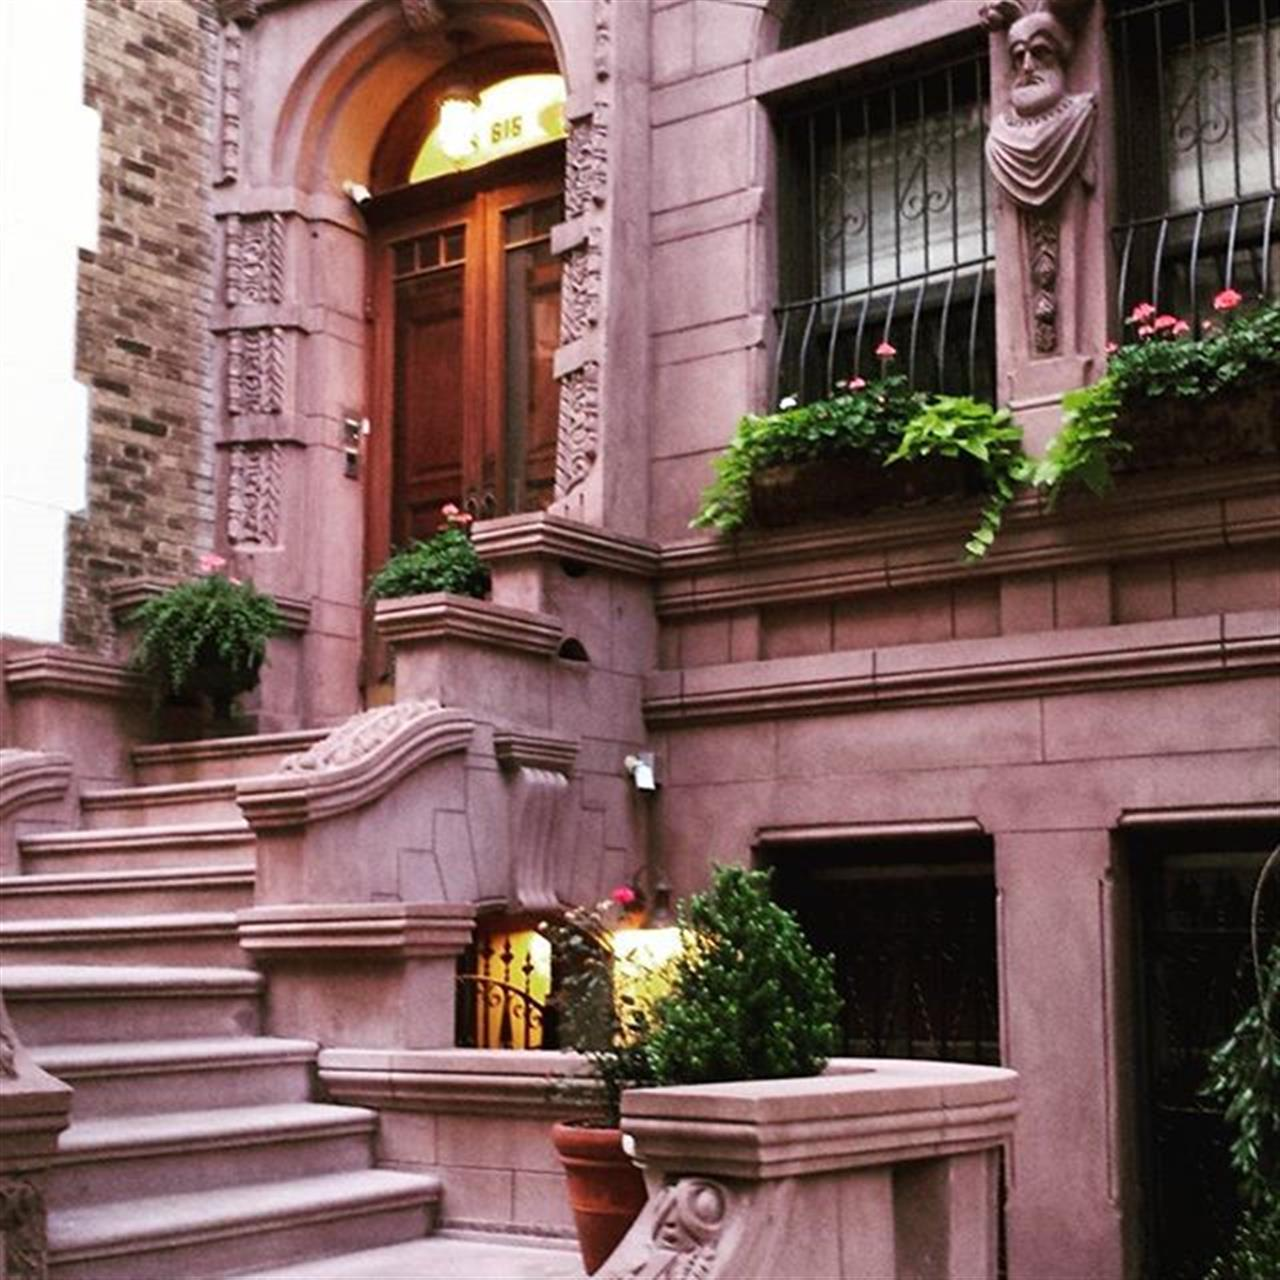 Stairway to heaven.  #exploreyourhood #leadingrelocal #brownstone #architecture #upperwestside #realestate #dreamhouse